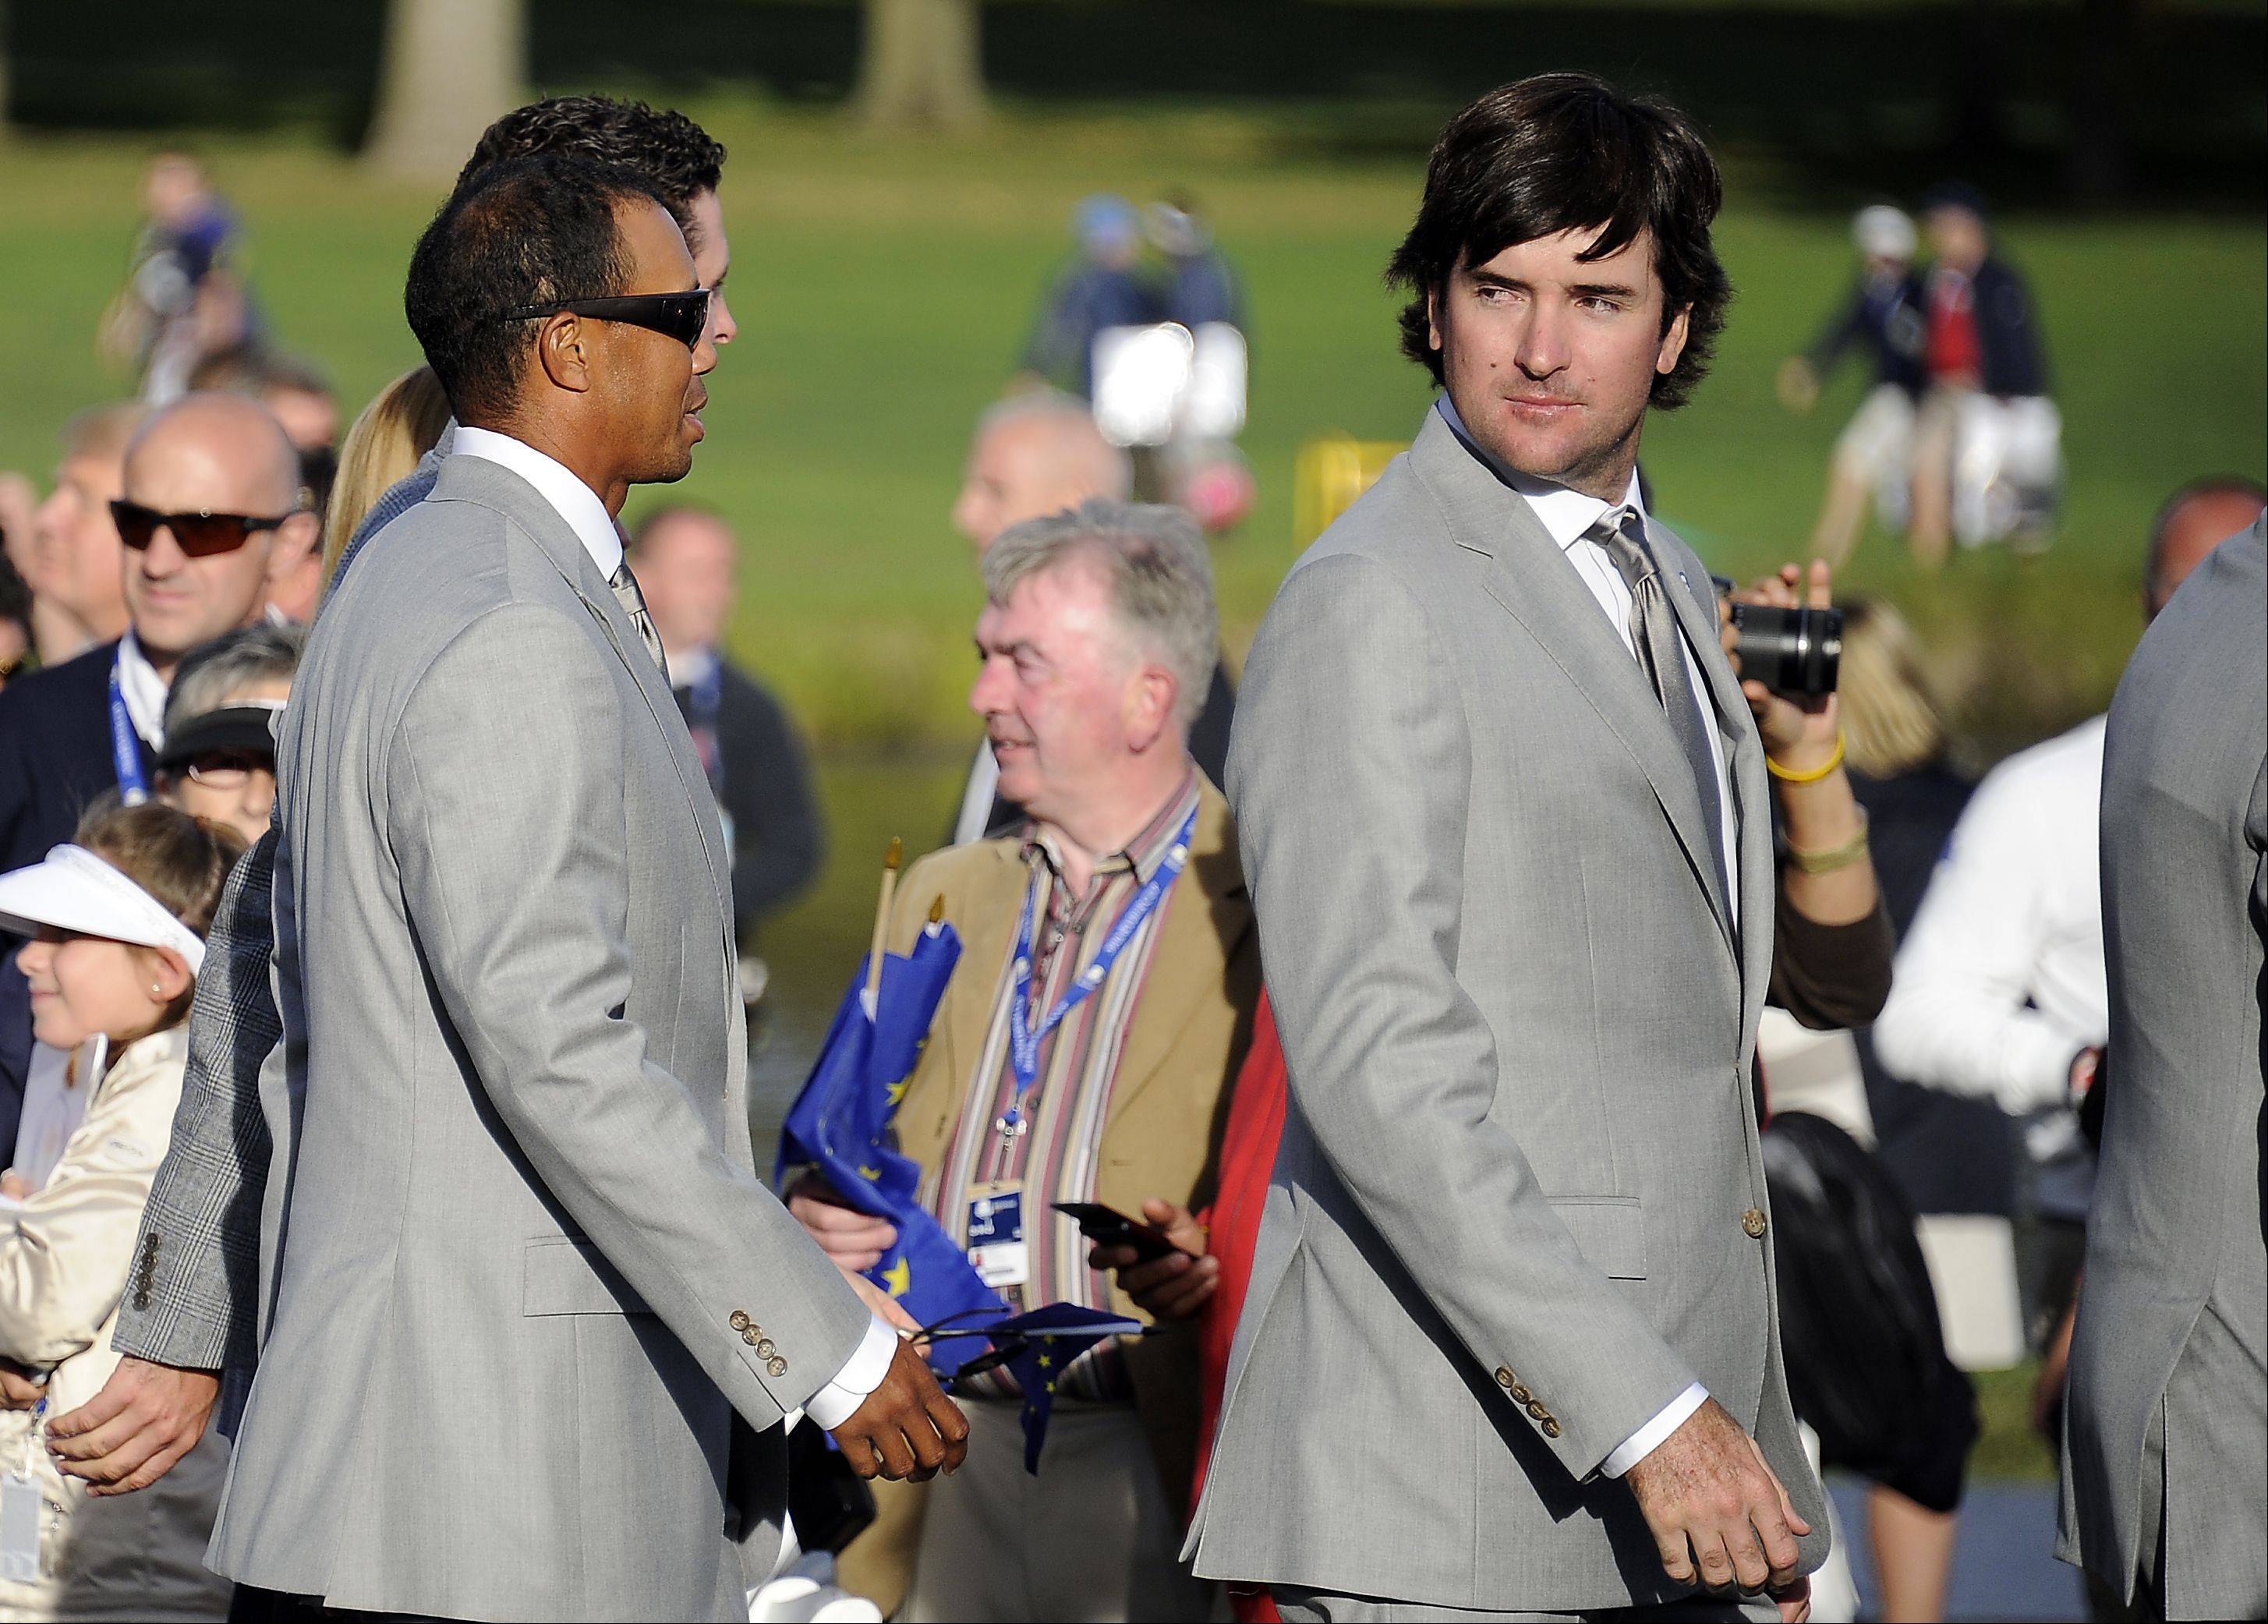 United States Bubba Watson walks the red carpet with Tiger Woods during the opening ceremonies of Ryder Cup at Medinah on Thursday.